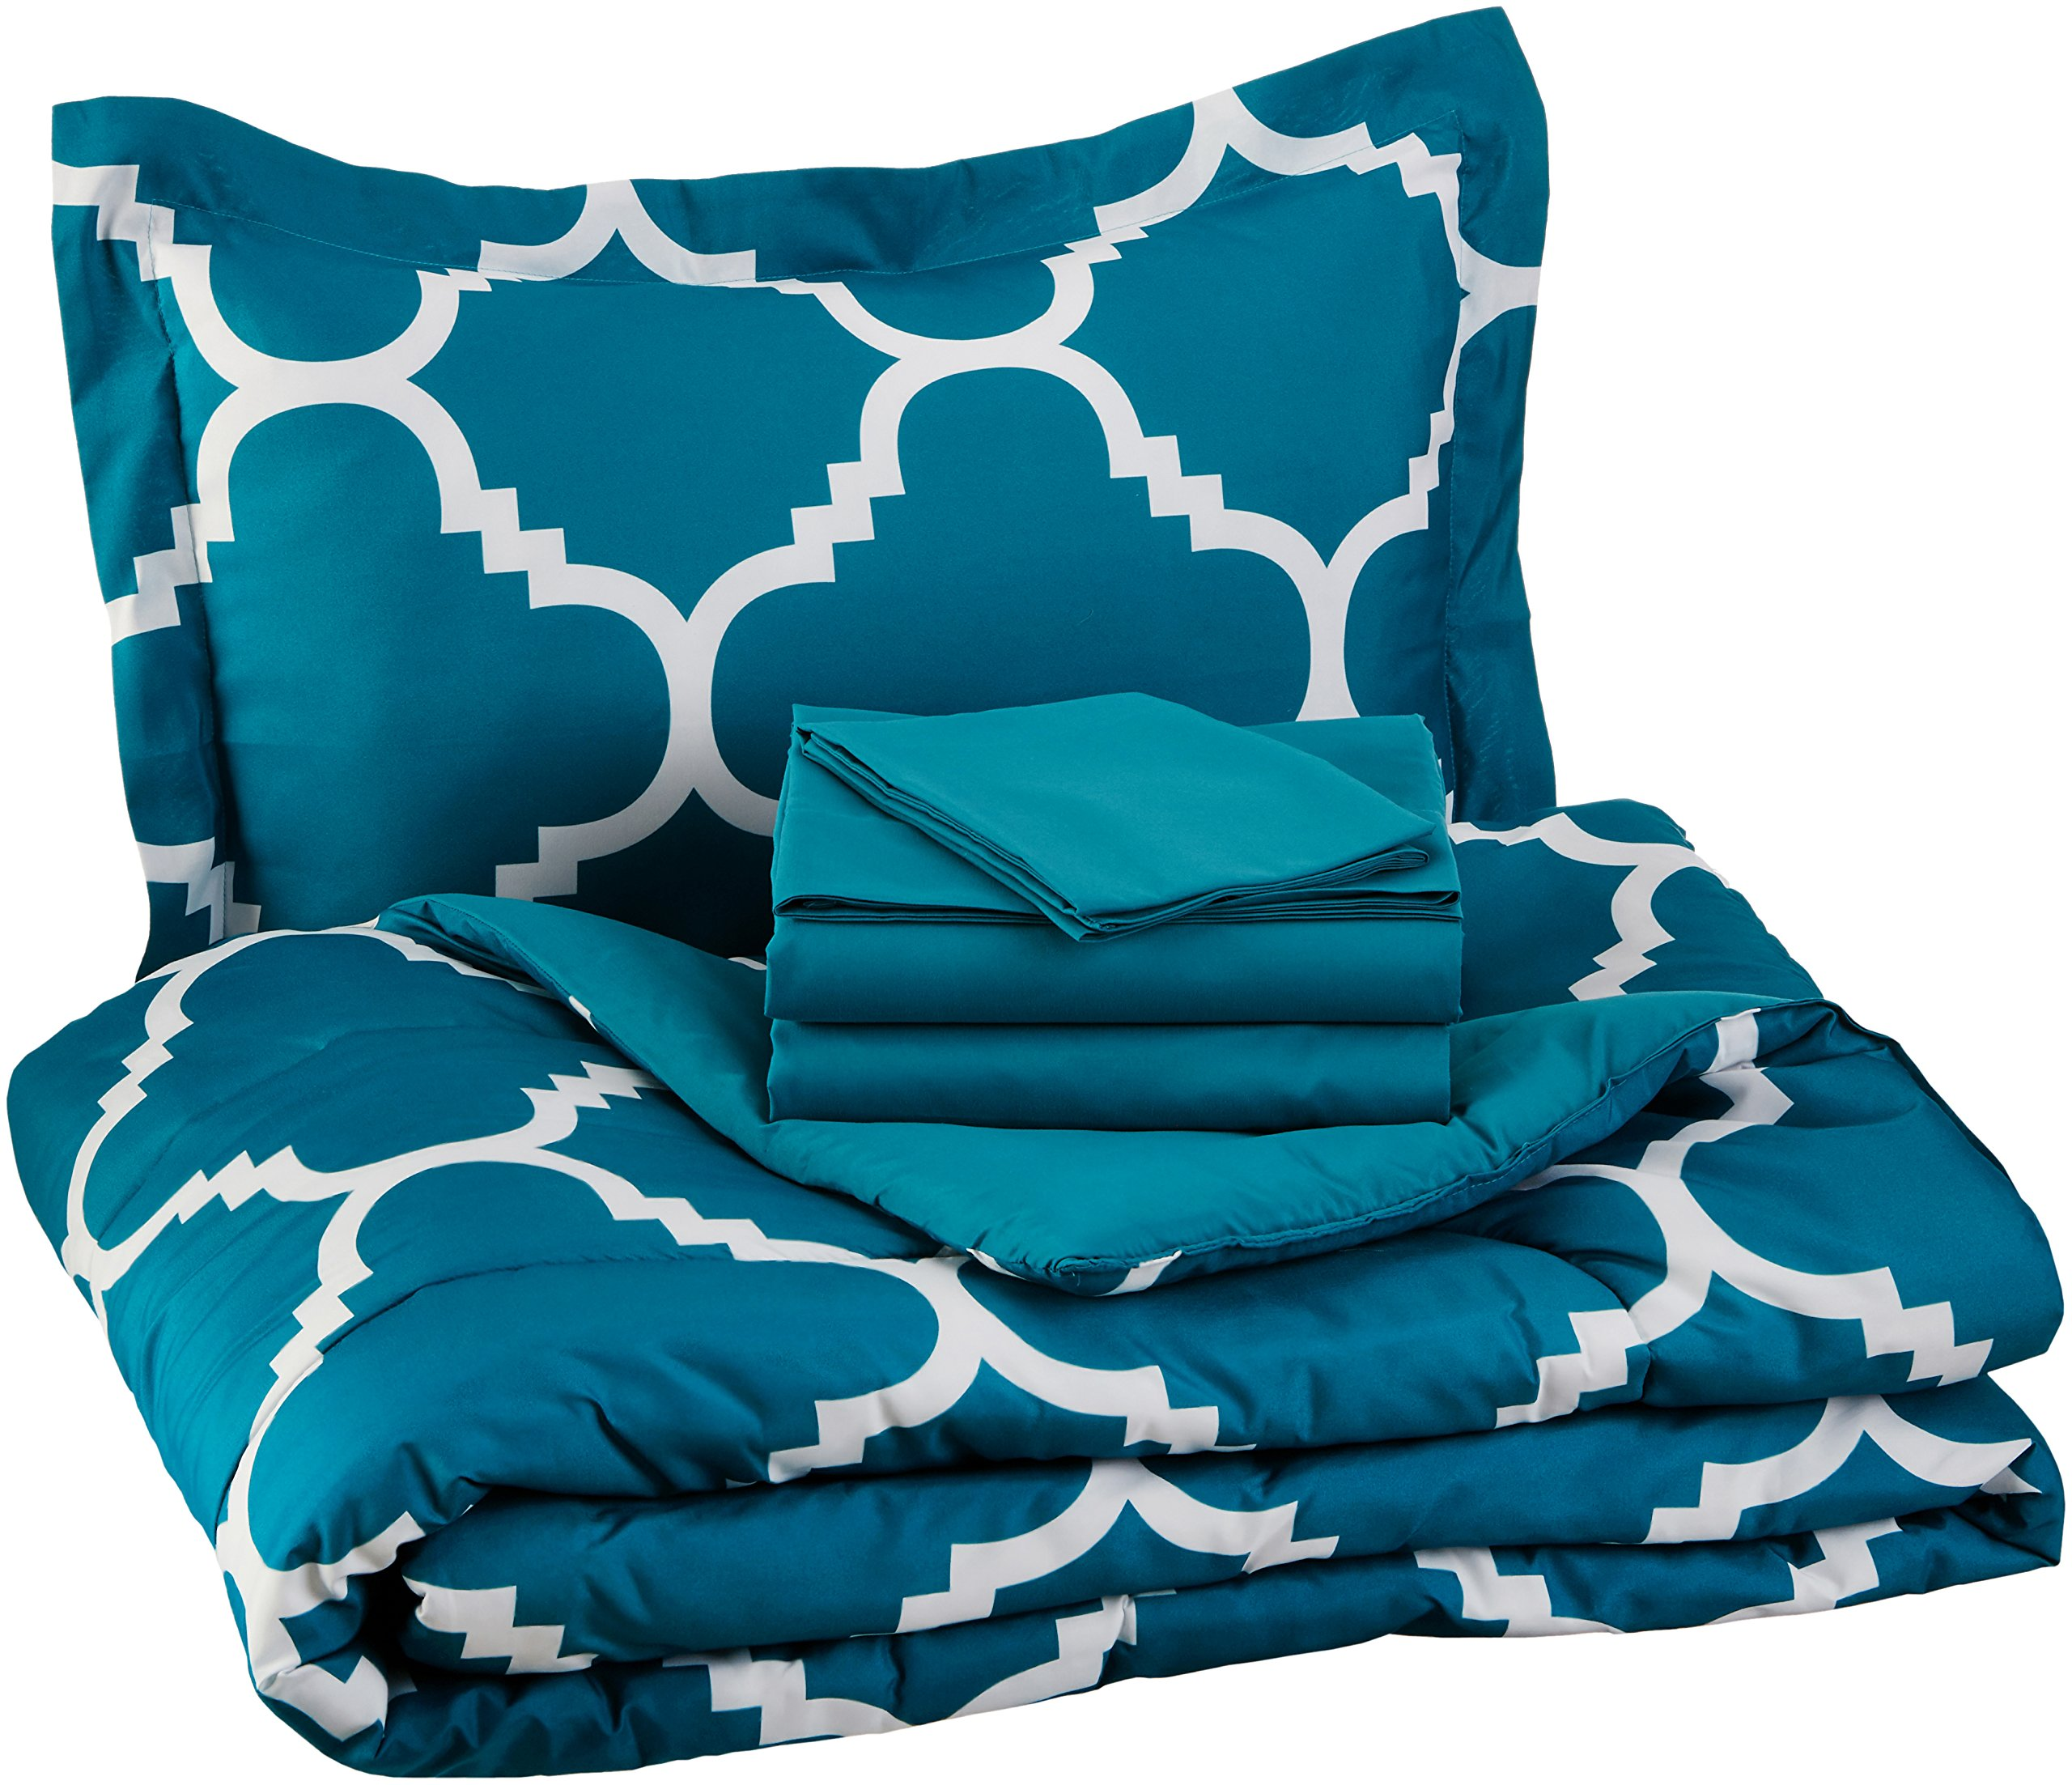 AmazonBasics 5-Piece Bed-In-A-Bag - Twin/Twin Extra-Long, Teal Trellis by AmazonBasics